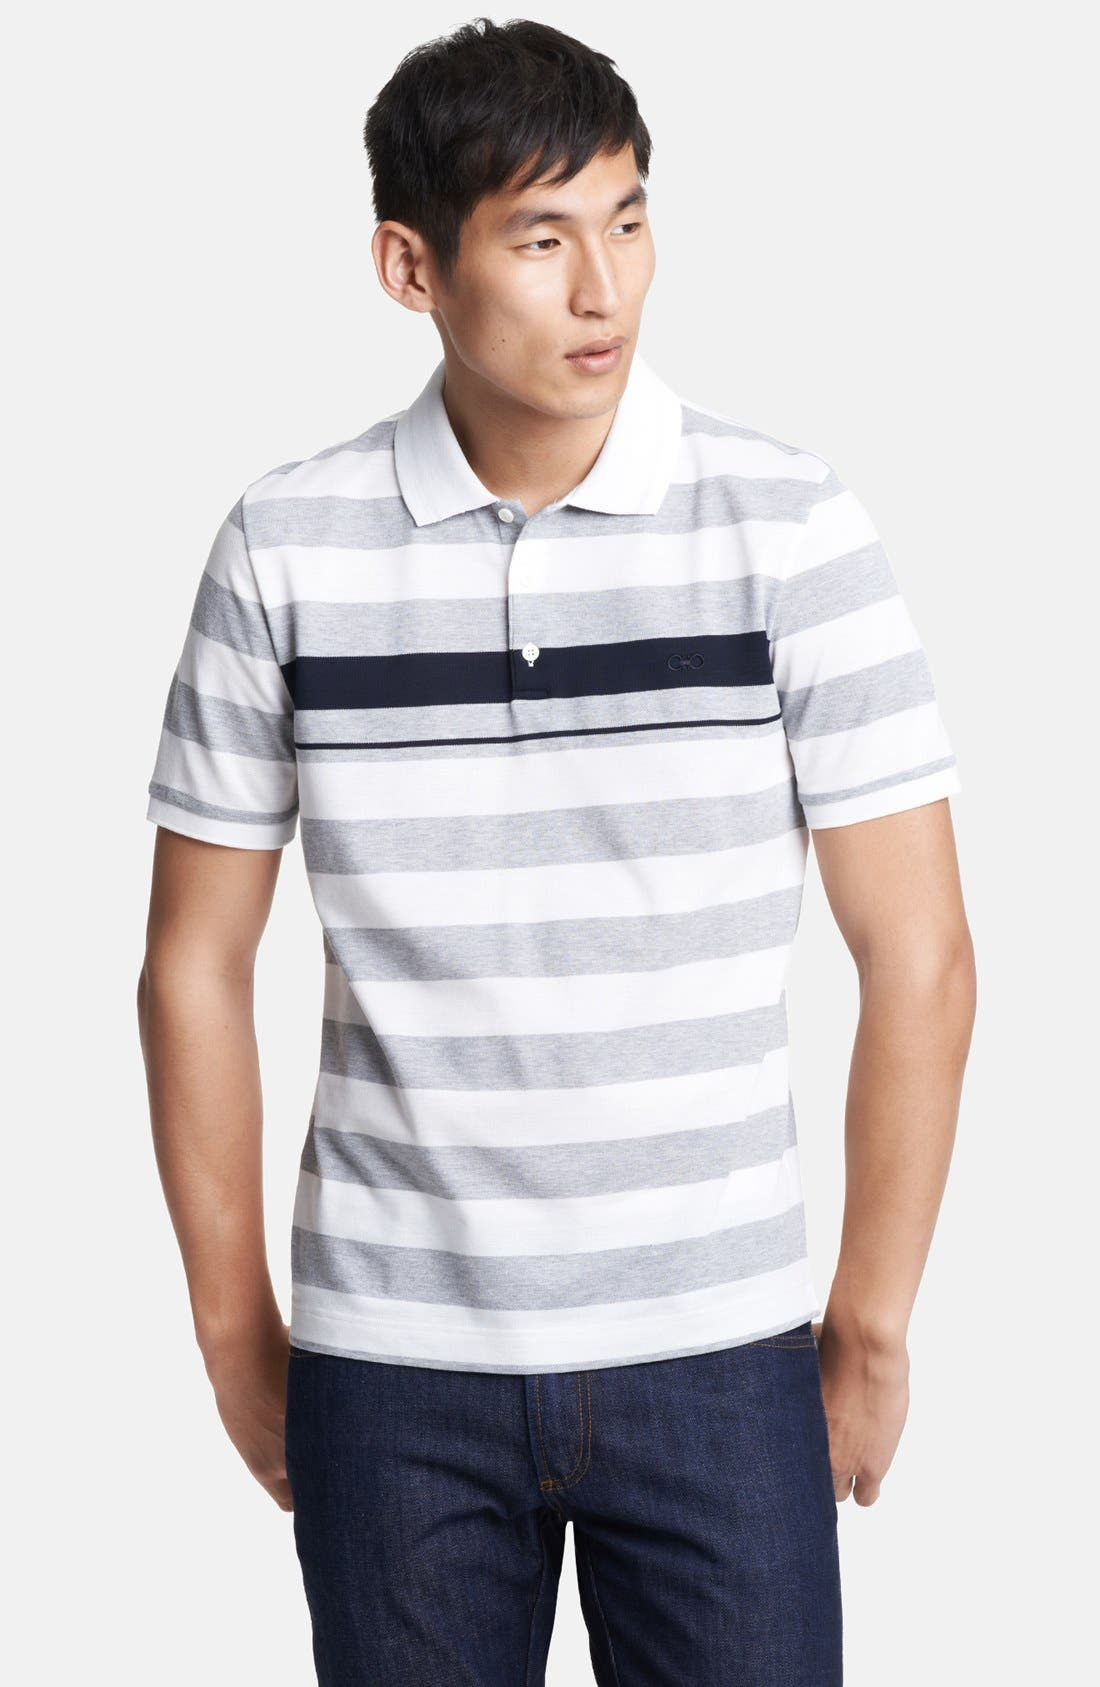 Alternate Image 1 Selected - Salvatore Ferragamo Trim Fit Stripe Polo